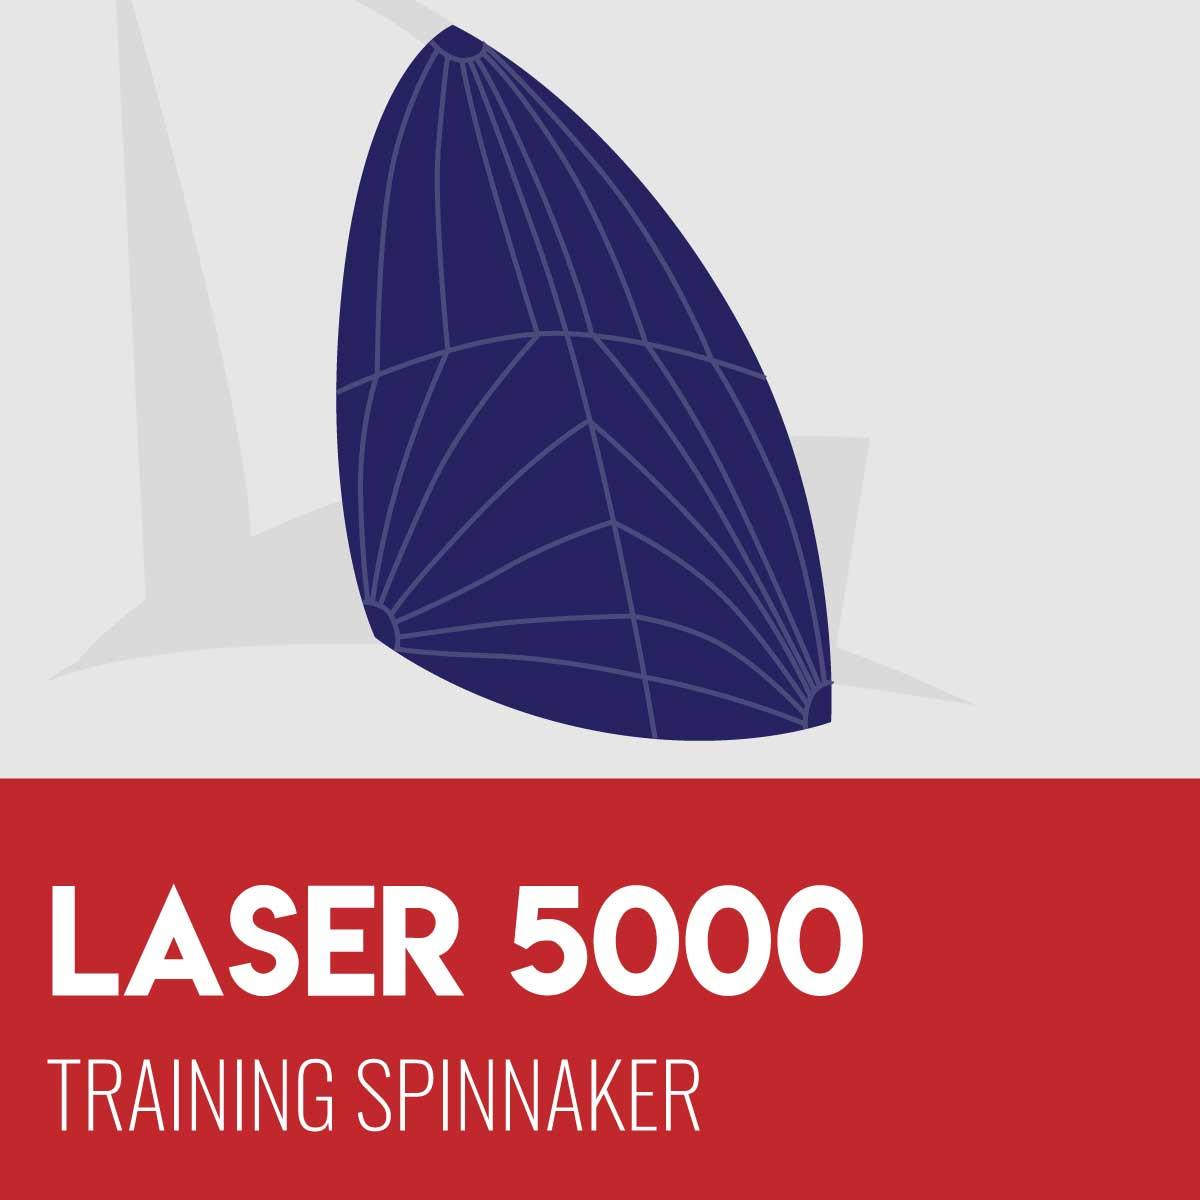 Laser 5000 Training Spinnaker